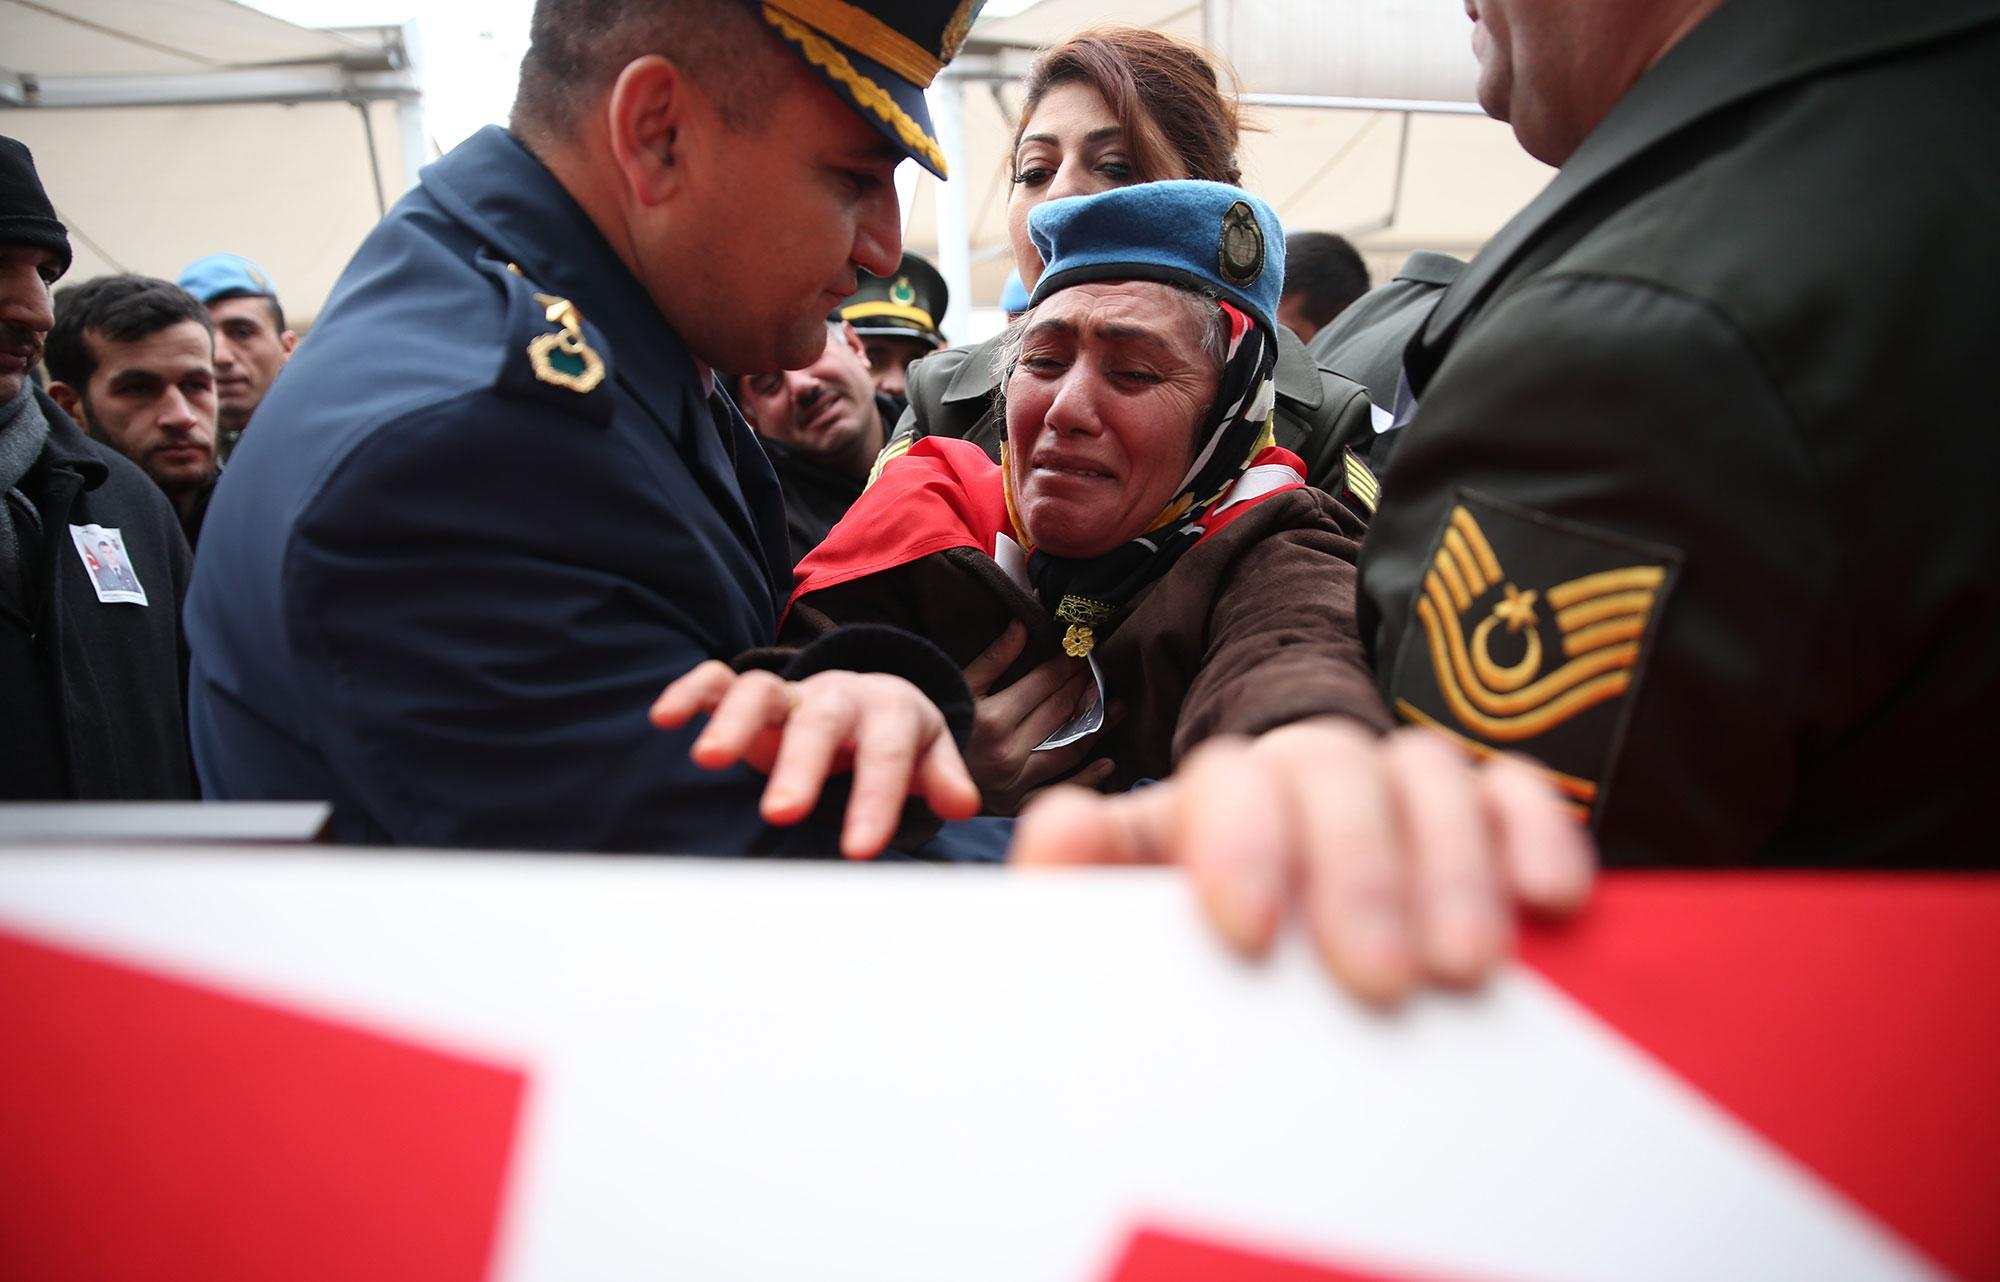 <p>Fadime Demir, mother of the Turkish soldier Ferhat Demir martyred in Operation Euphrates Shield in Syria, wearing her son's beret cries over the Turkish flag-draped coffin during the funeral ceremony in Bursa, Turkey on Dec. 23, 2016. Operation Euphrates Shield began in late August to improve security, support coalition forces and eliminate the terror threat along Turkeys border using Free Syrian Army fighters backed by Turkish artillery and jets. (Photo: Ali Atmaca/Anadolu Agency/Getty Images) </p>